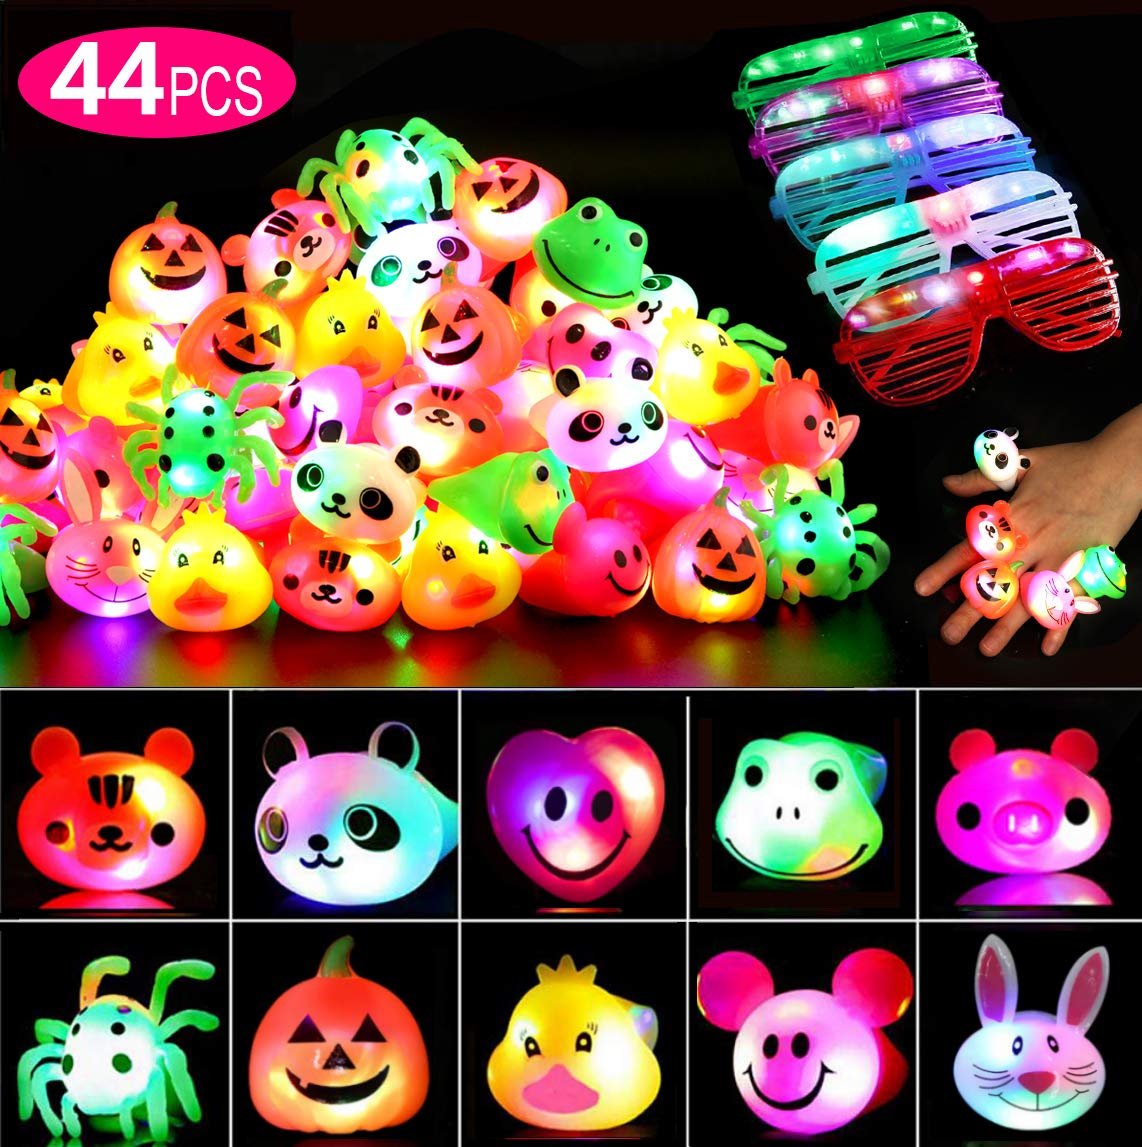 44 Pcs Halloween Party Favors for Kids/Adults, Prizes Flashing LED Light Up Jelly Rings Birthday Gifts Glow in The Dark Party Supplies Rings Glasses for Boys/Girls - 11 Color 11 Shape by MAO MAO JEWELRY